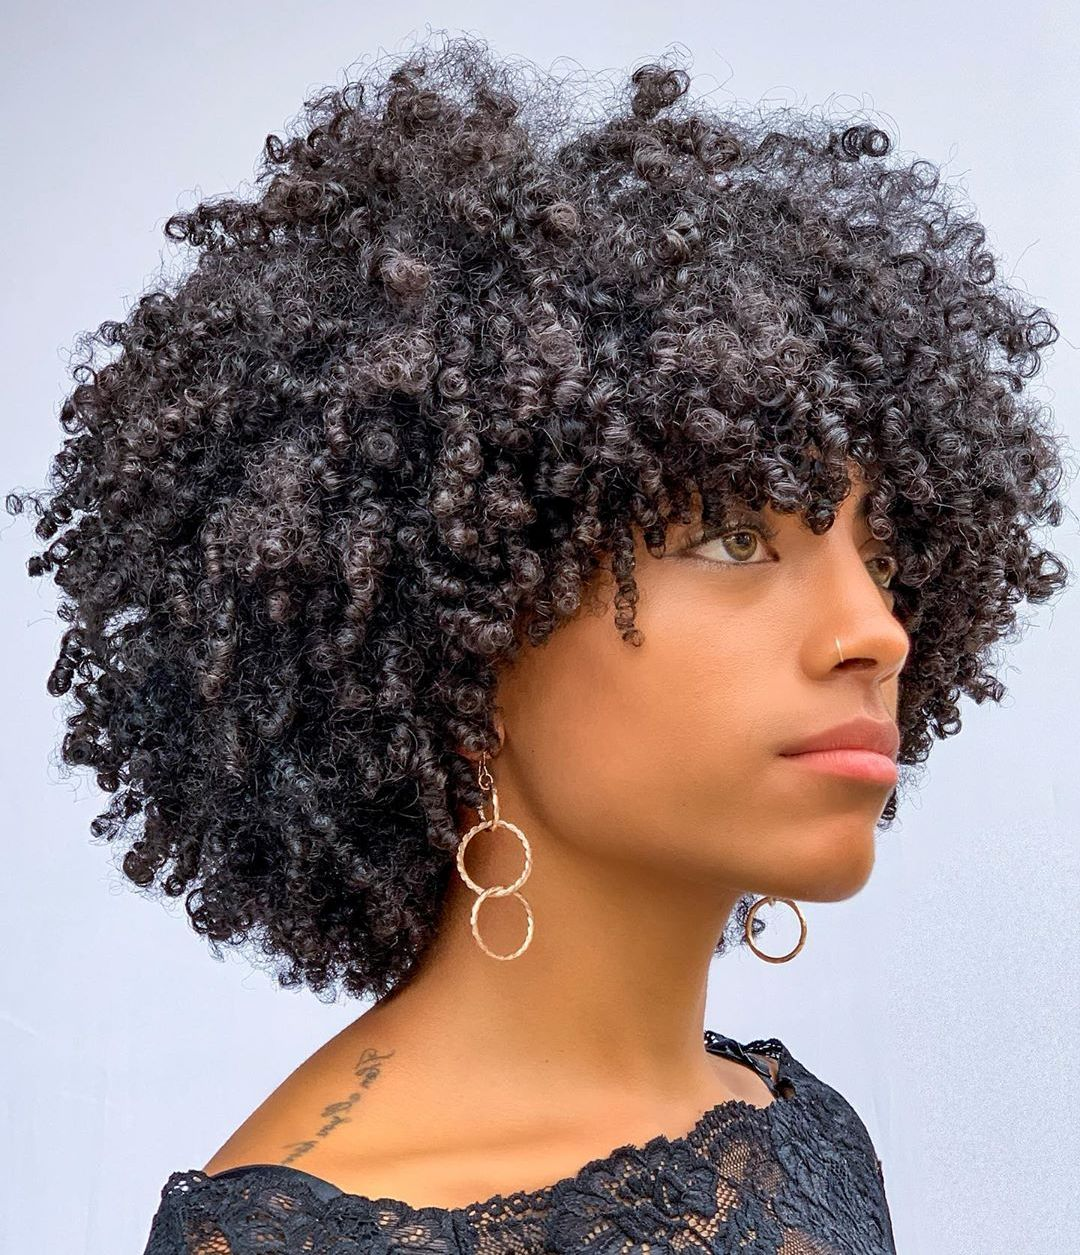 50 Best Haircuts And Hairstyles For Short Curly Hair In 2020 Hair Adviser